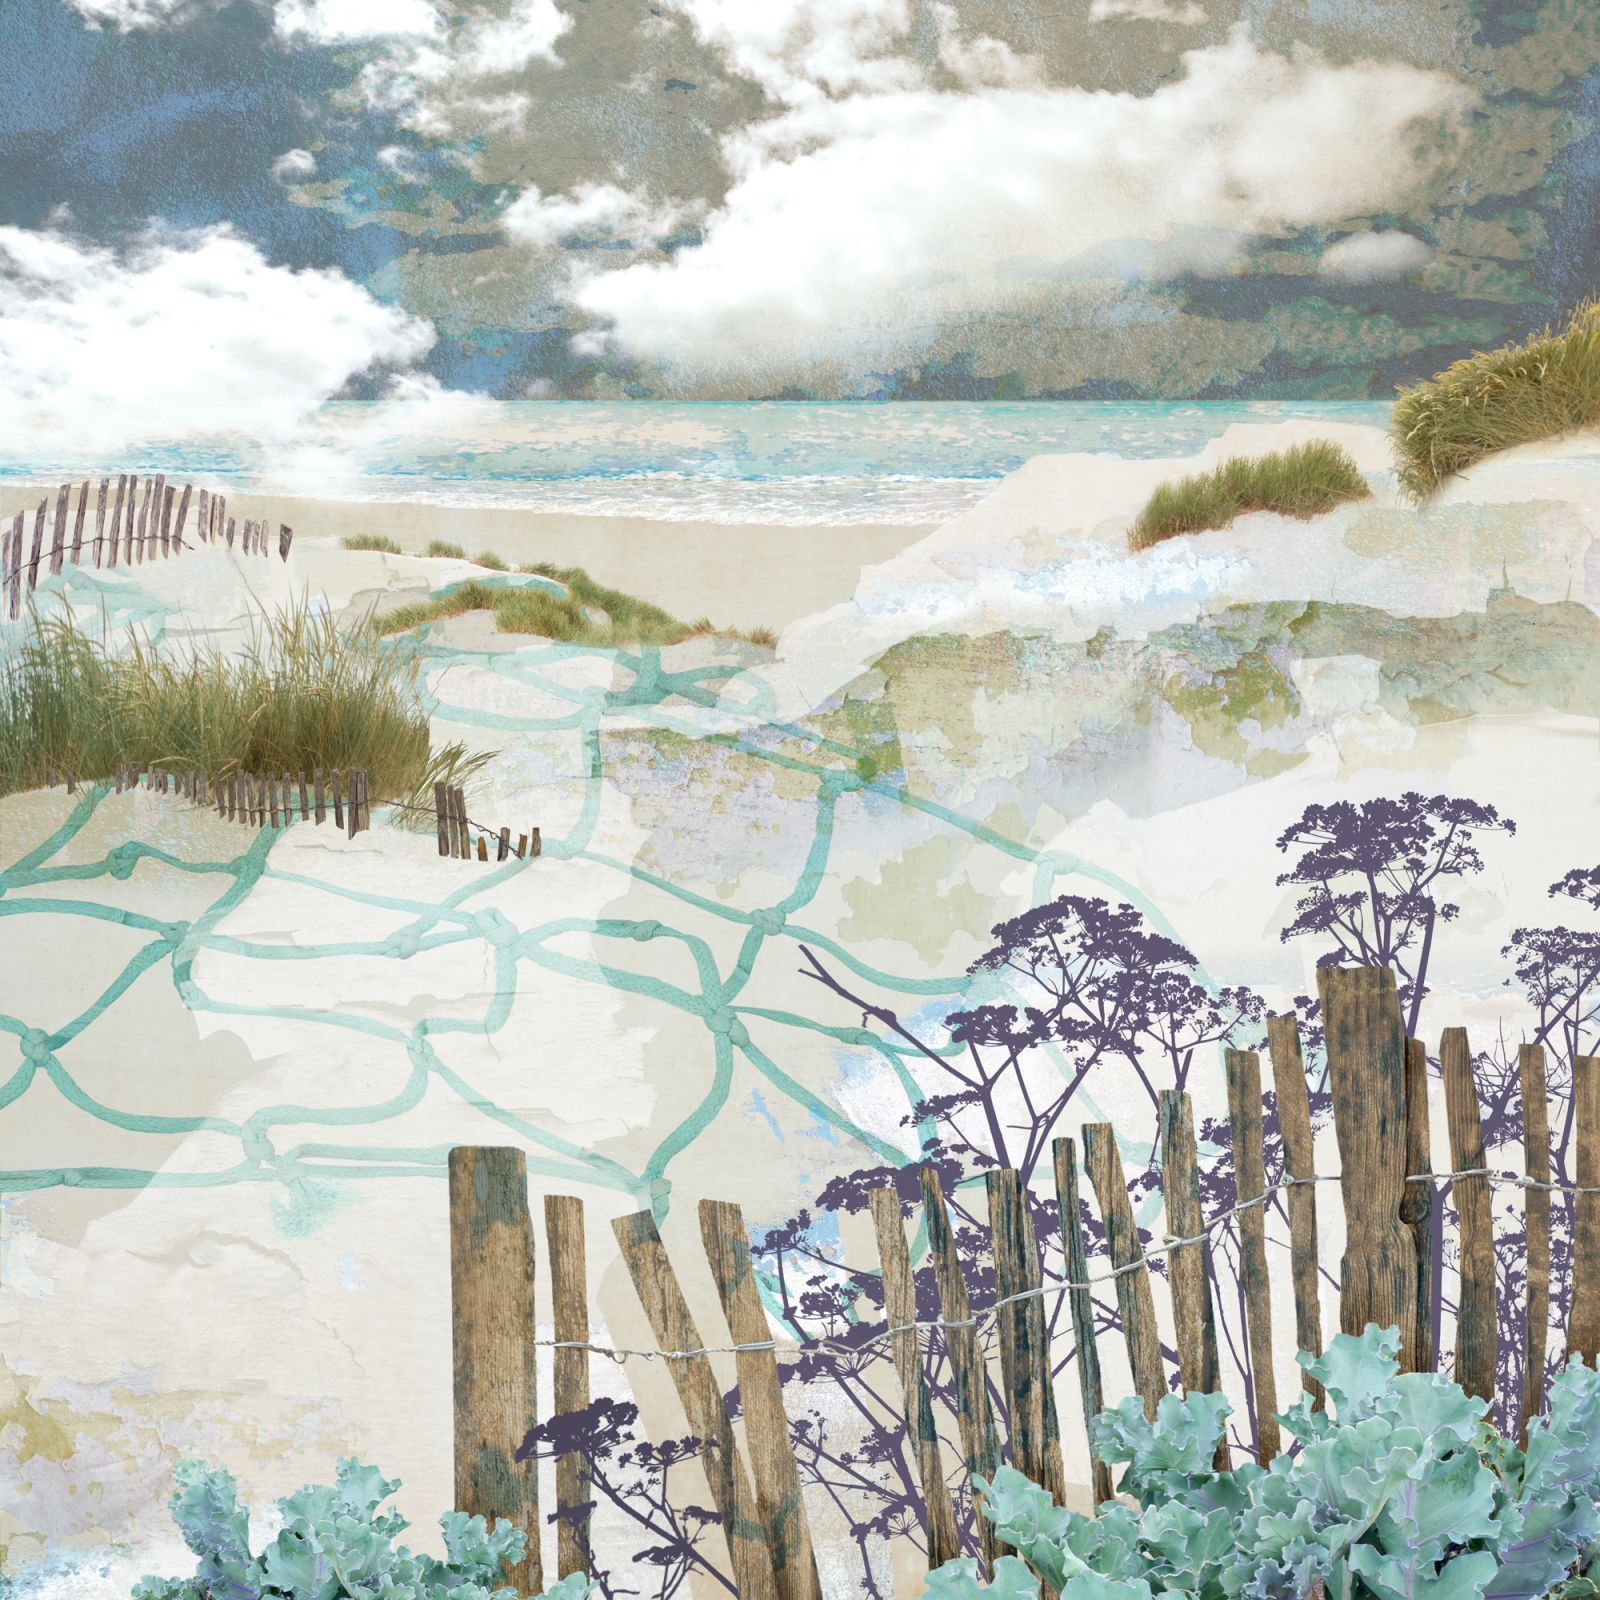 digital collage, Claire Gill Artist, fine art card, greeting card, limited edition print, hahnemuhle, buy art, collect art, seascapes, photomontage, coastal art, limited edition prints, seascape 82, Kent coast, Sand dunes, beach, Powdersand, Camber Sands